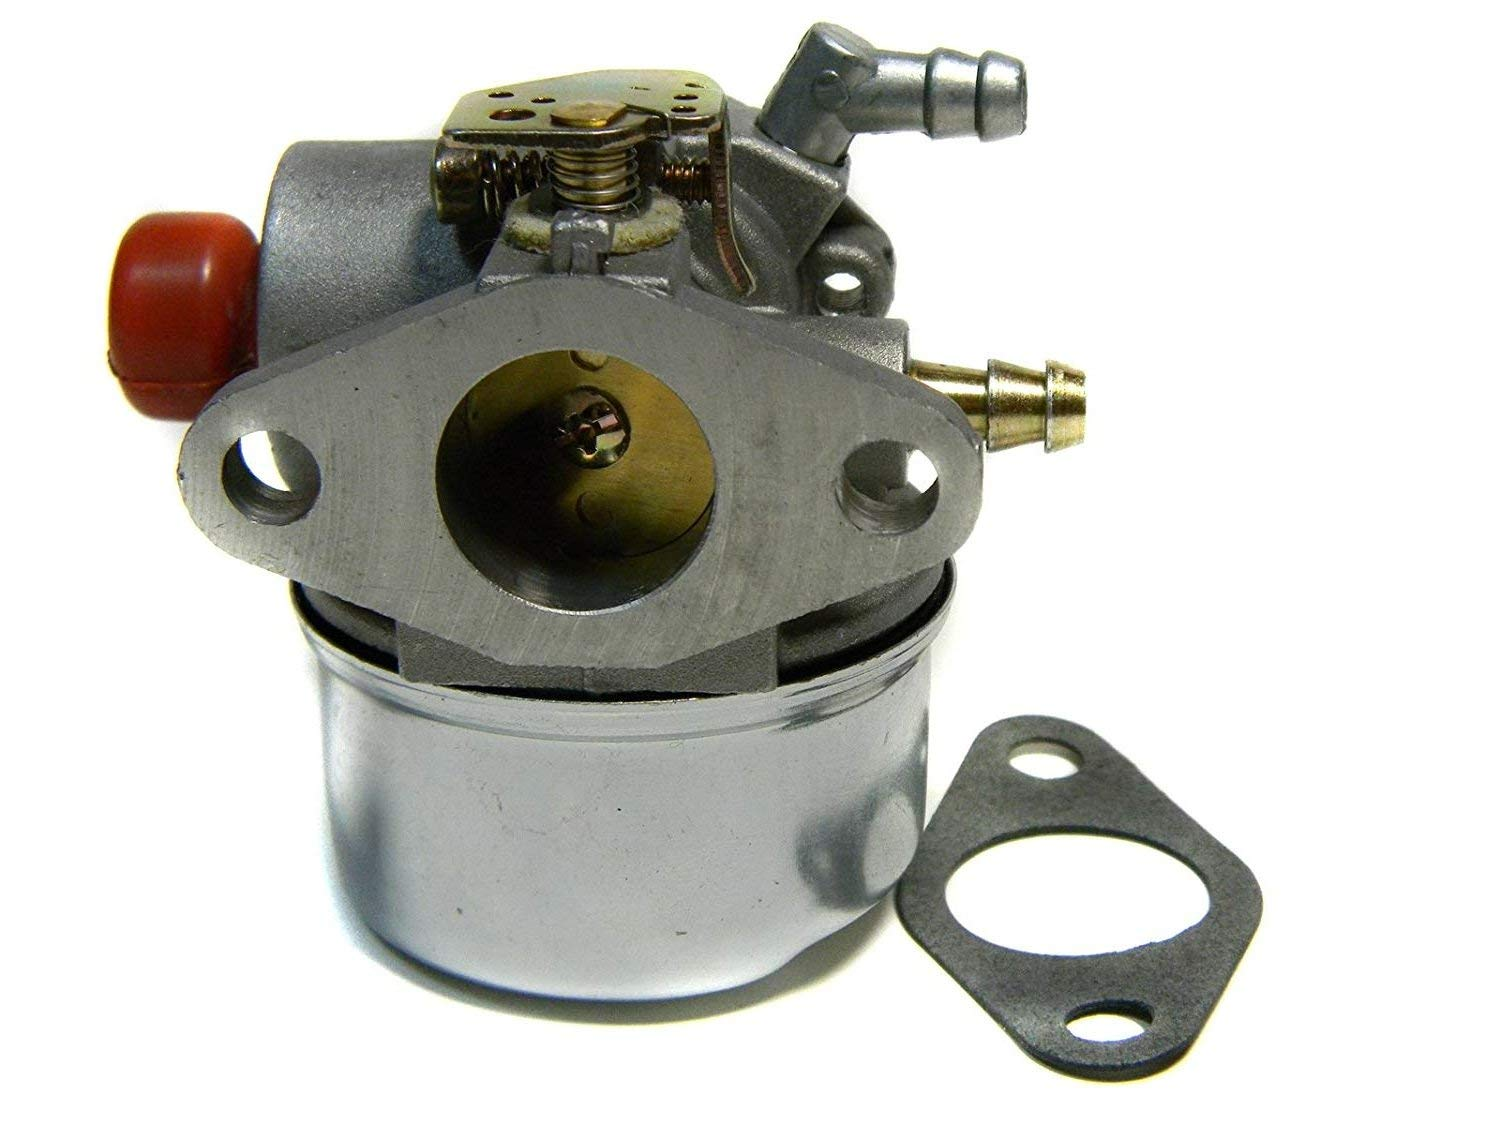 Cheap Carb Tecumseh, find Carb Tecumseh deals on line at